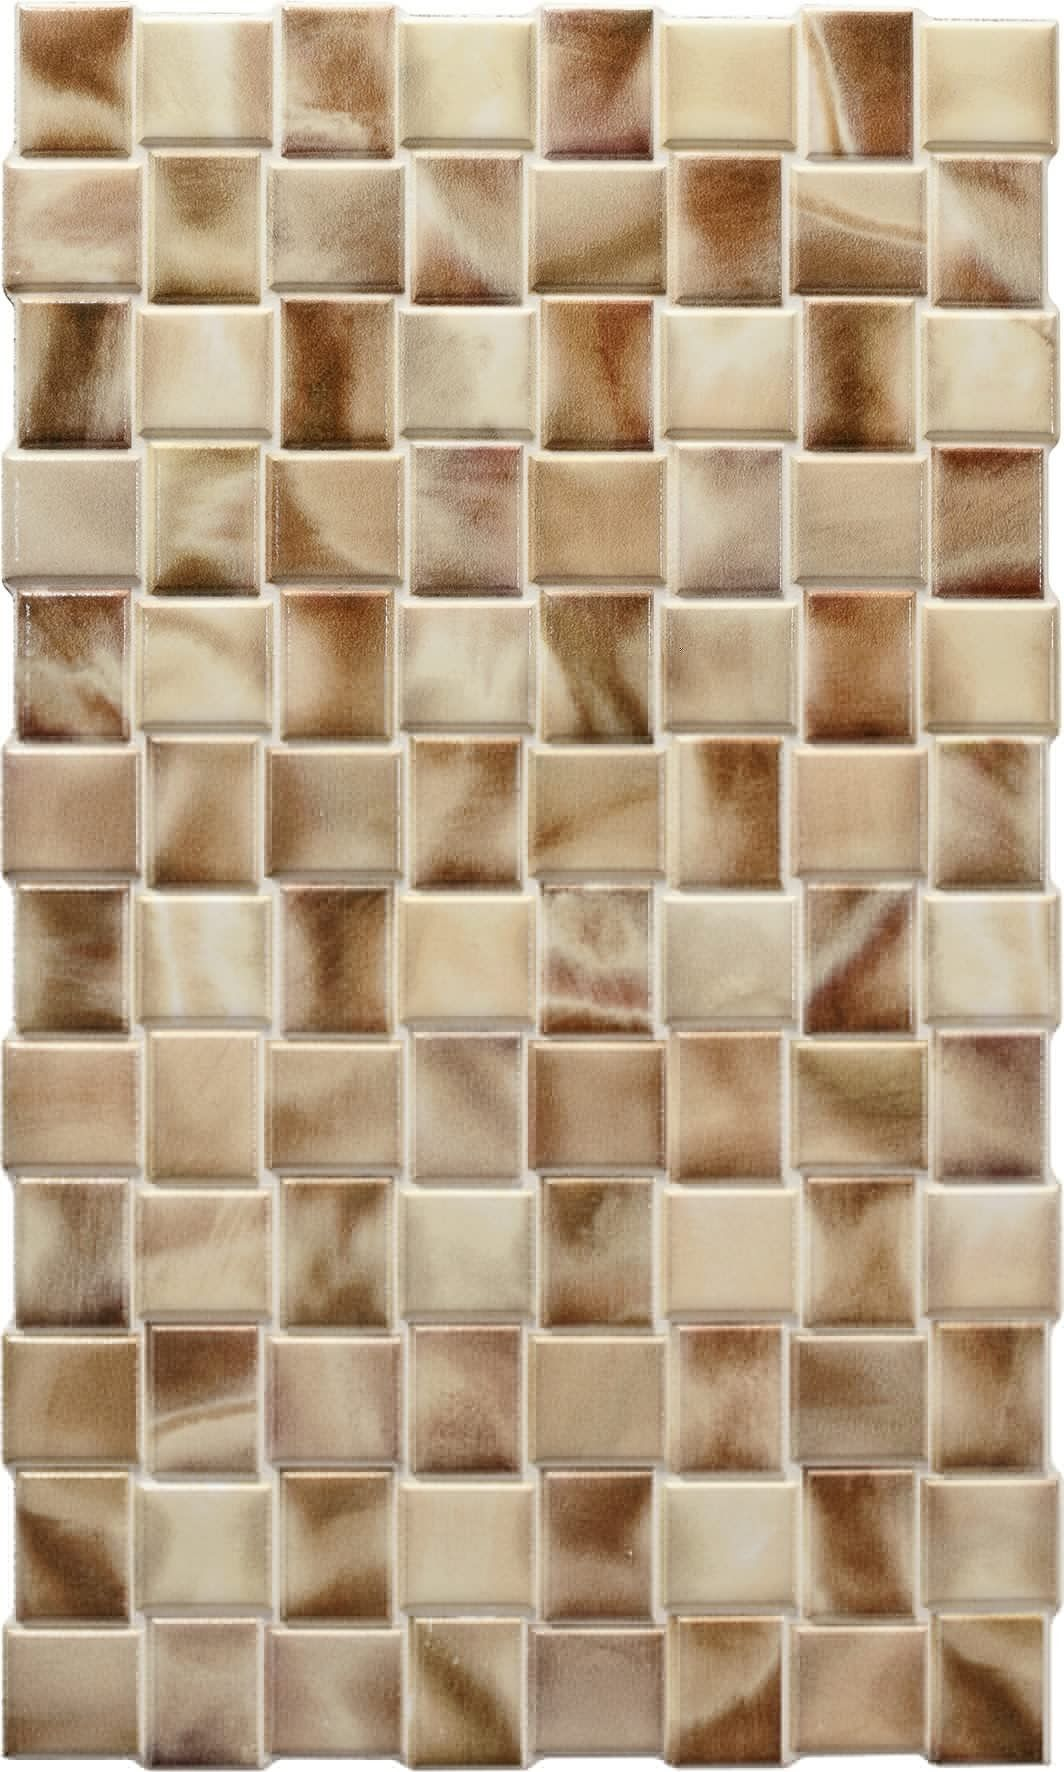 Dado tango marrone 20x333 cm 302724 porcelain stoneware stone available on all the flooring by dado notte brava at the best price guaranteed discover dado tango marrone cm 302724 stone effect with all its dailygadgetfo Images